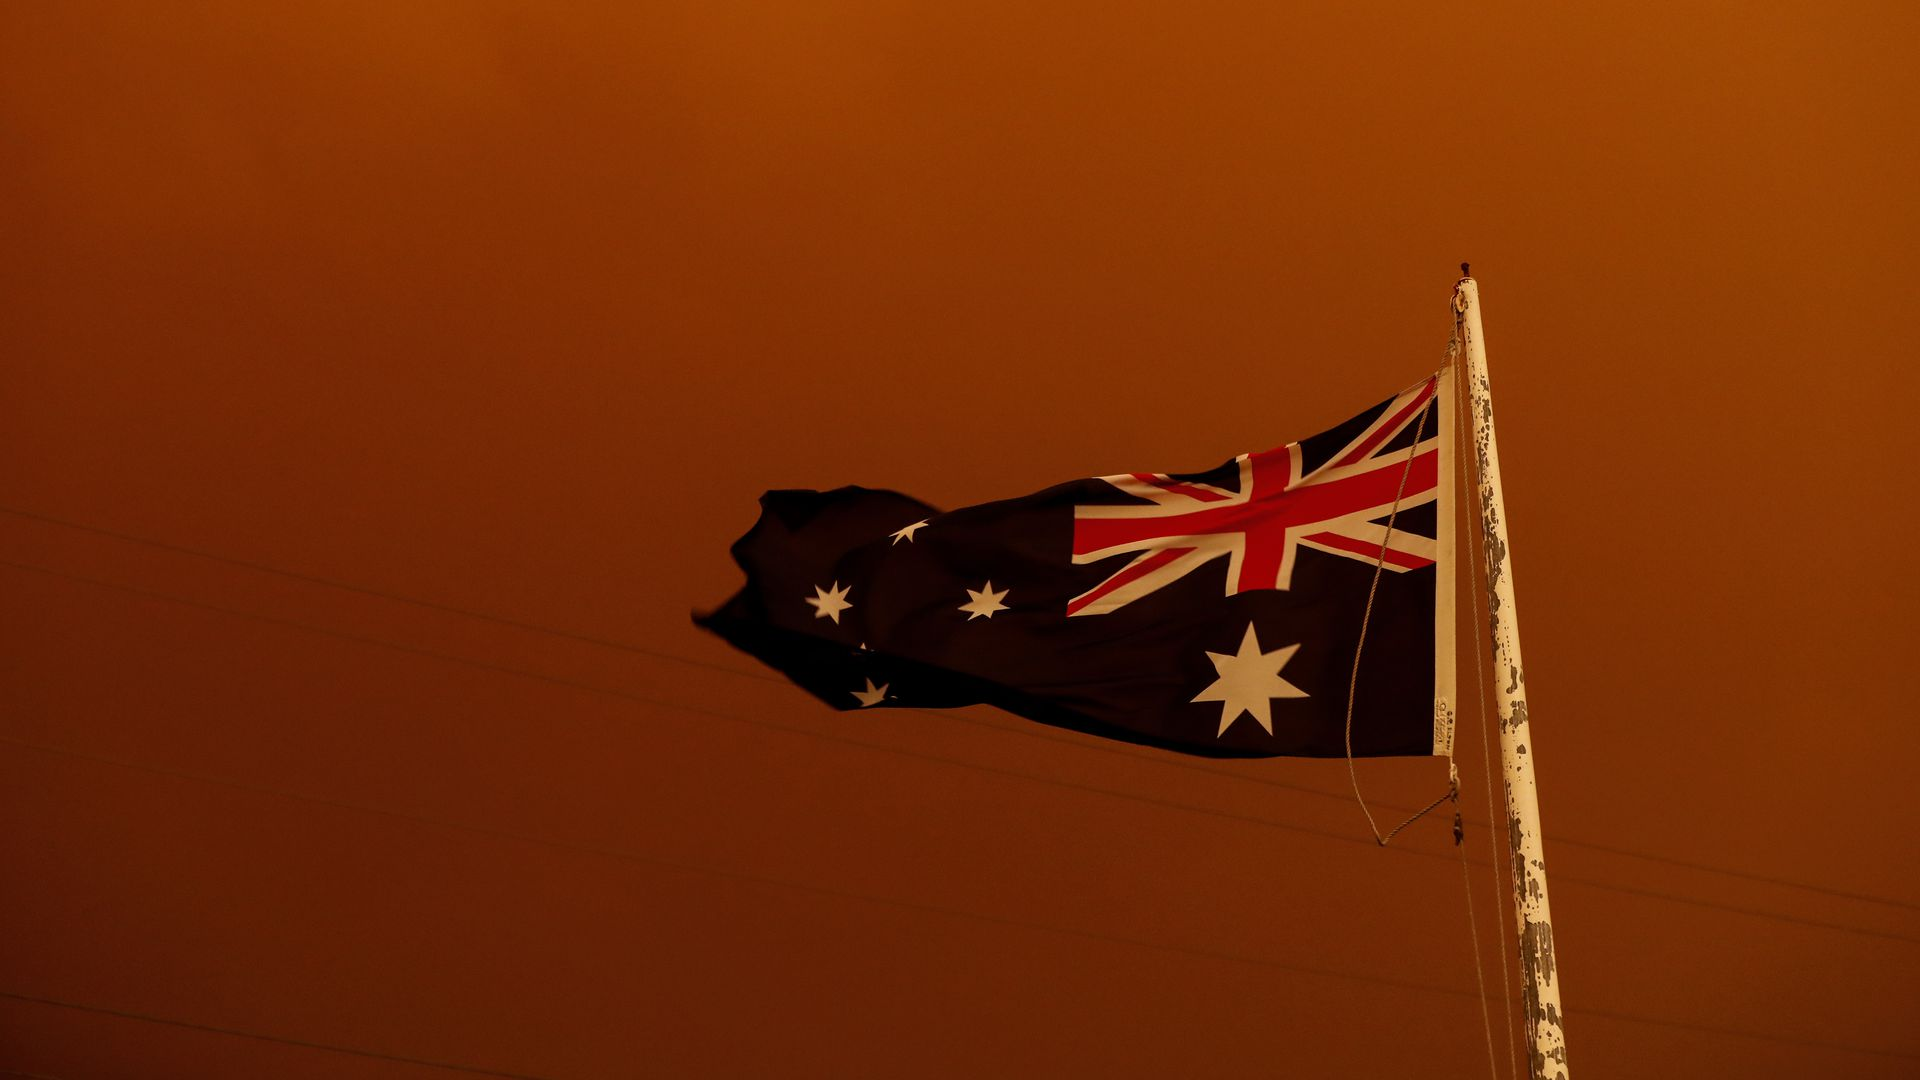 In this image, the Australian flag is seen behind a red sky.